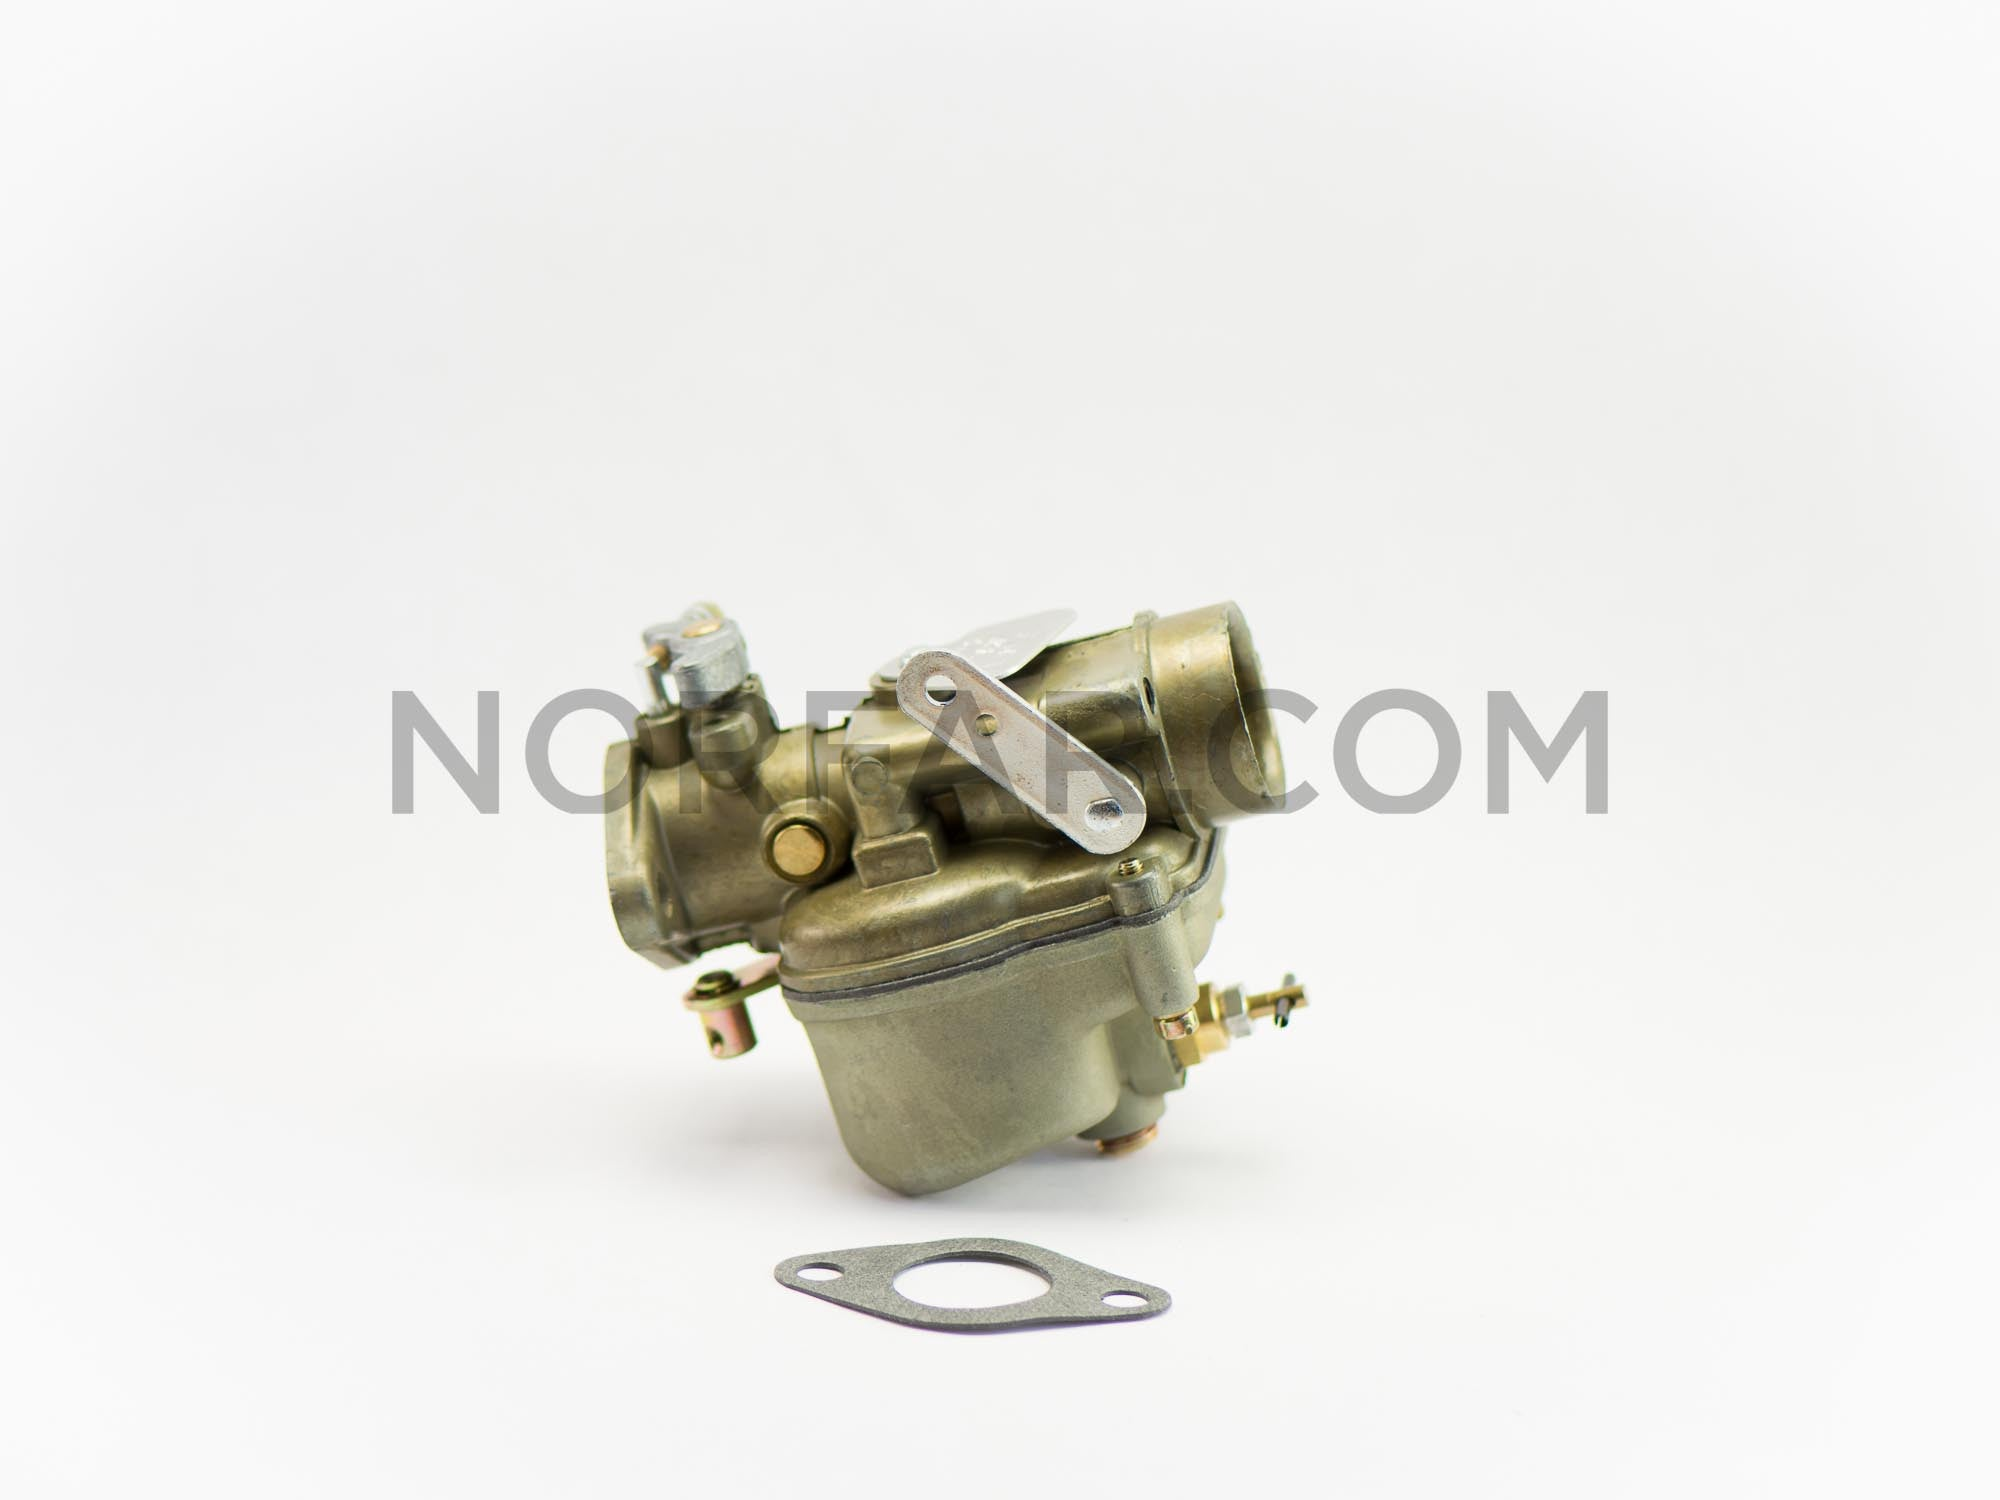 Zenith Carburetors - NORFAR COM